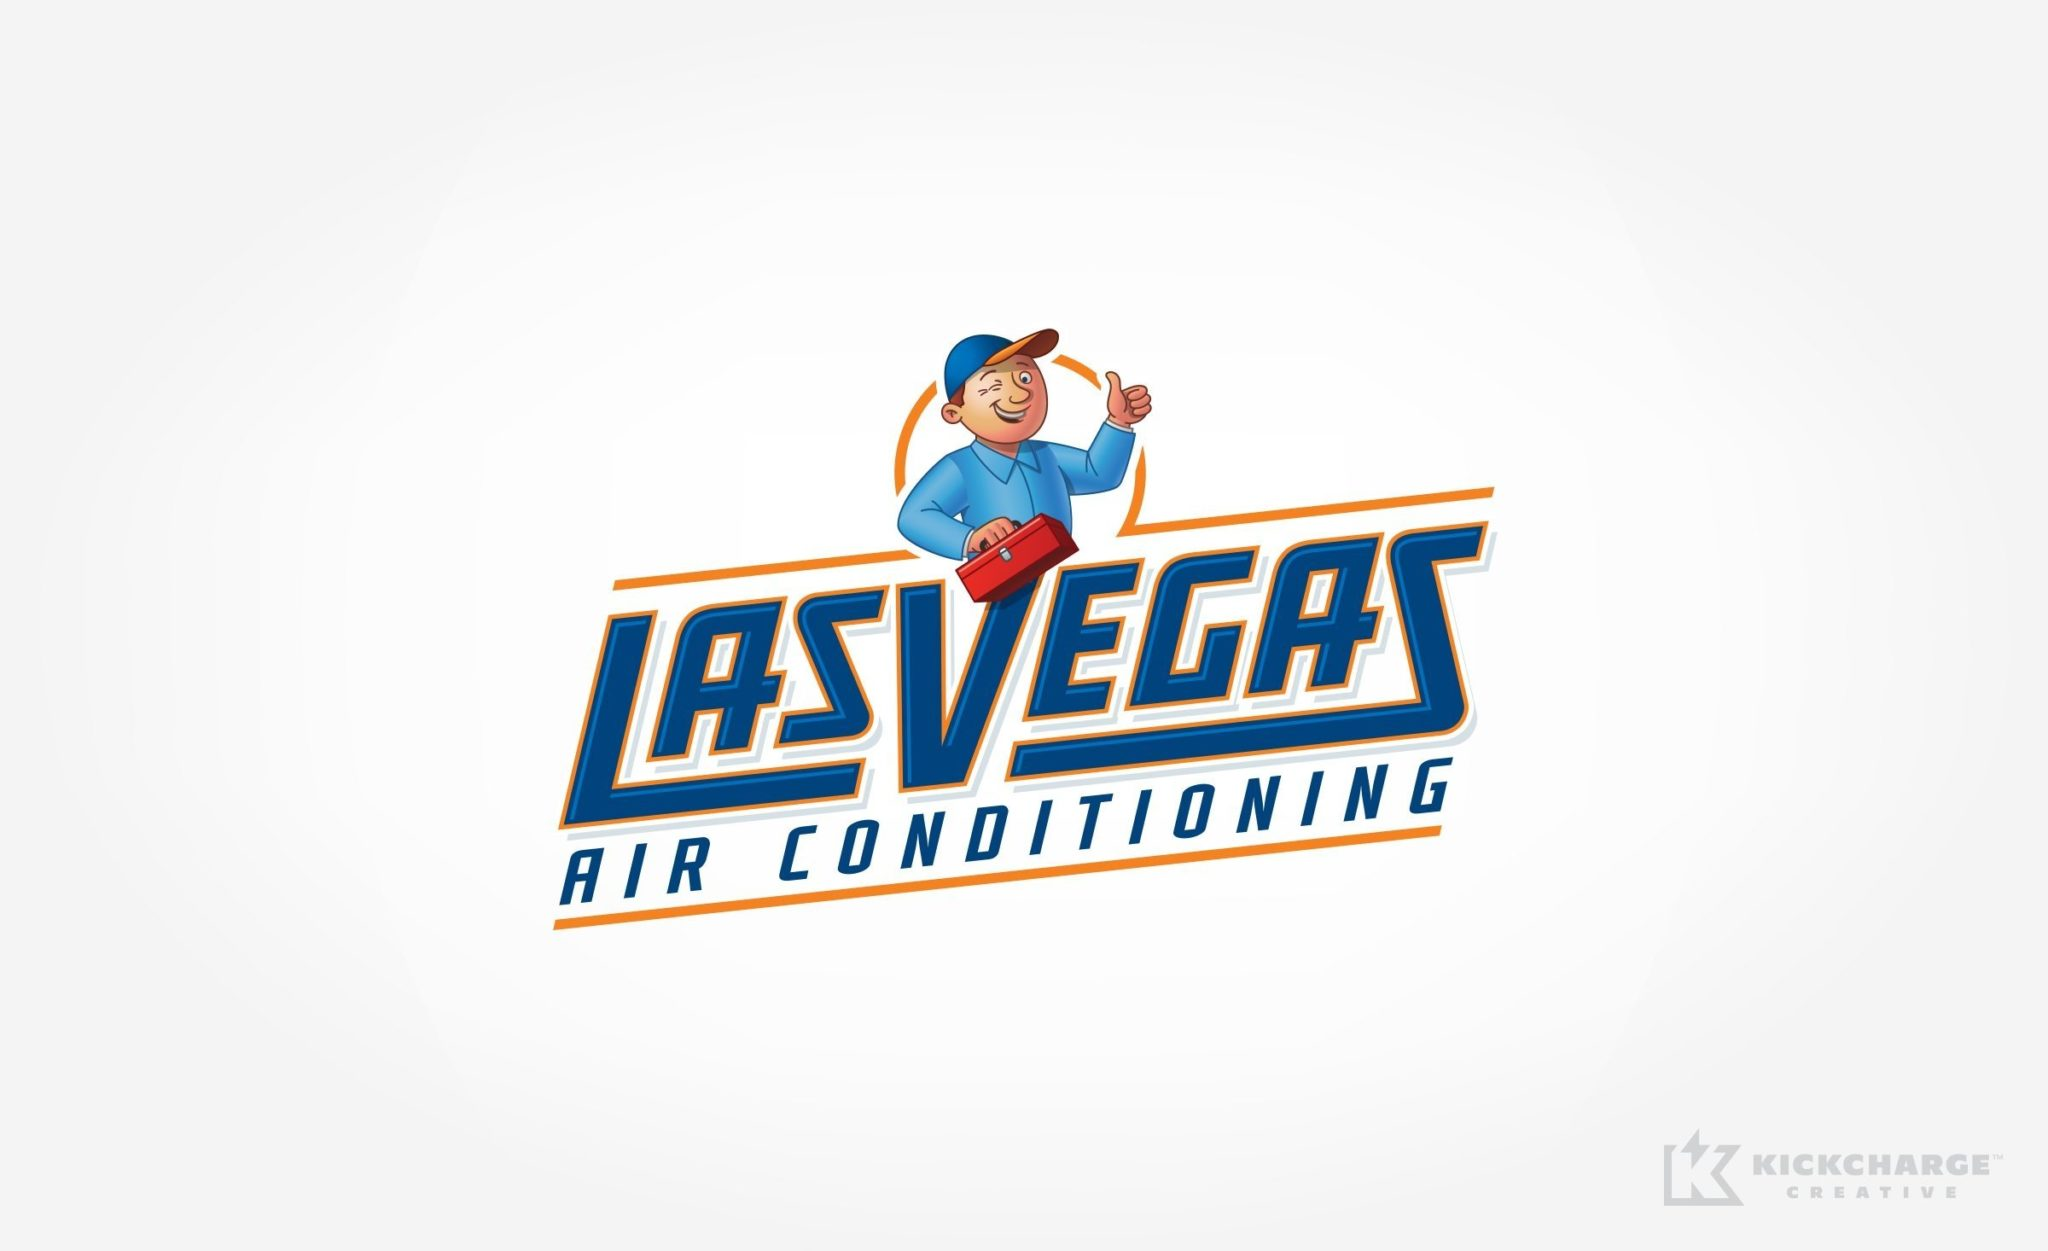 Las Vegas Air Conditioning